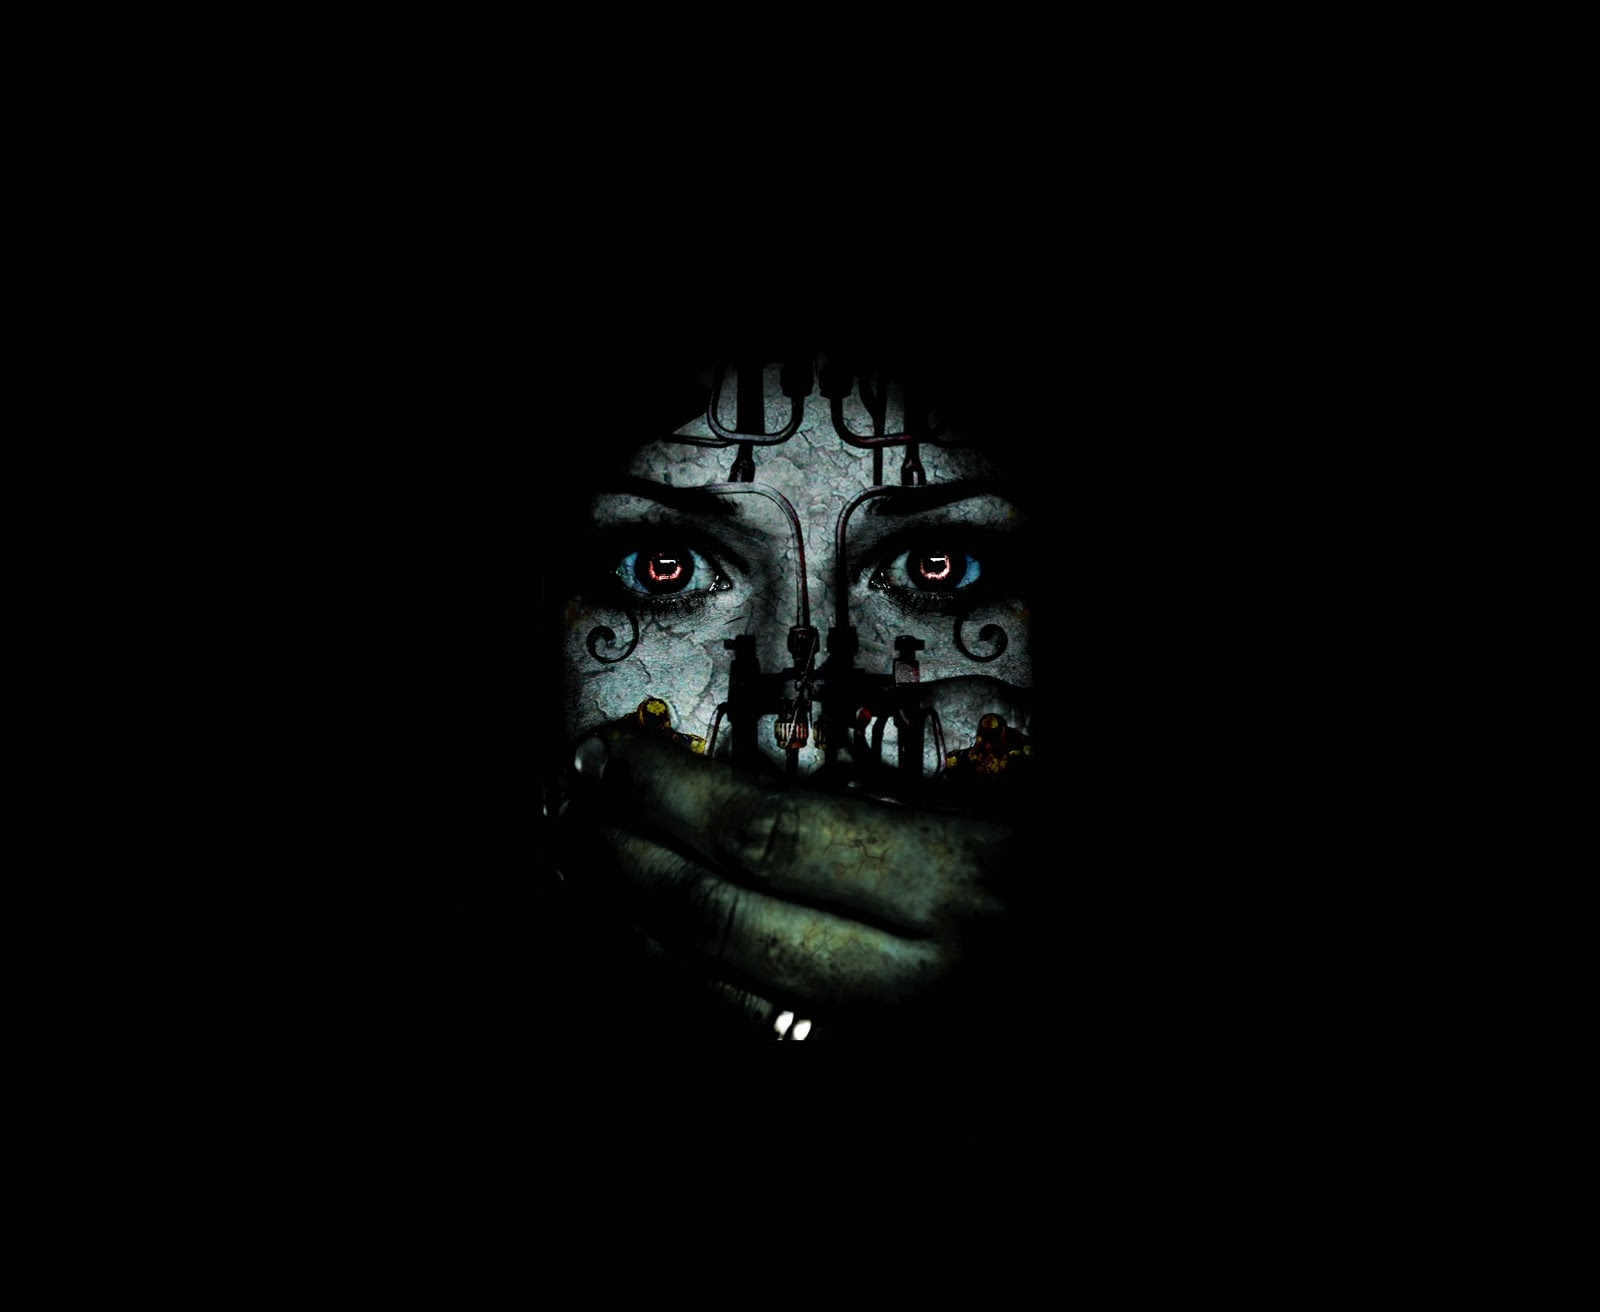 A Collection Of Dark Mysterious Hd Fantasy Wallpapers: Dark Gothic Girls Wallpapers Desktop